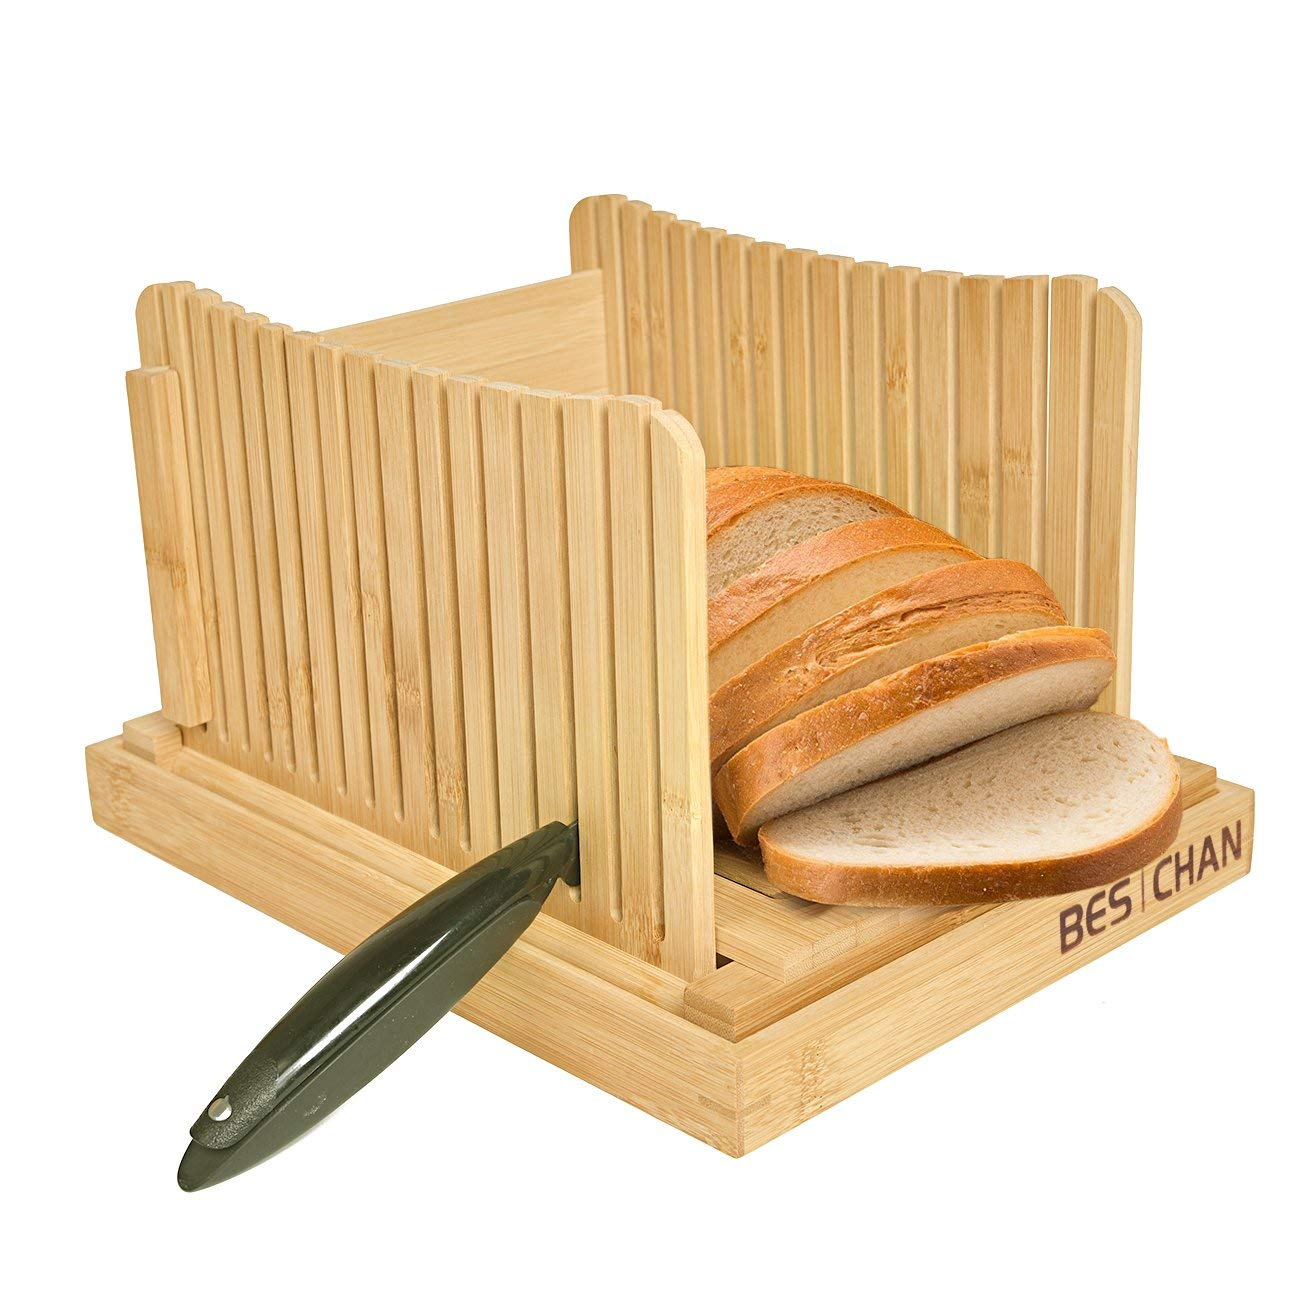 "Kinwell Nature Bamboo Foldable Bread Slicer with Crumb Catcher Tray for Homemade Bread & Loaf Cakes, Thickness Adjustable,Thick & Thin Slices 1/3"", 3/8"" and 1/2"""